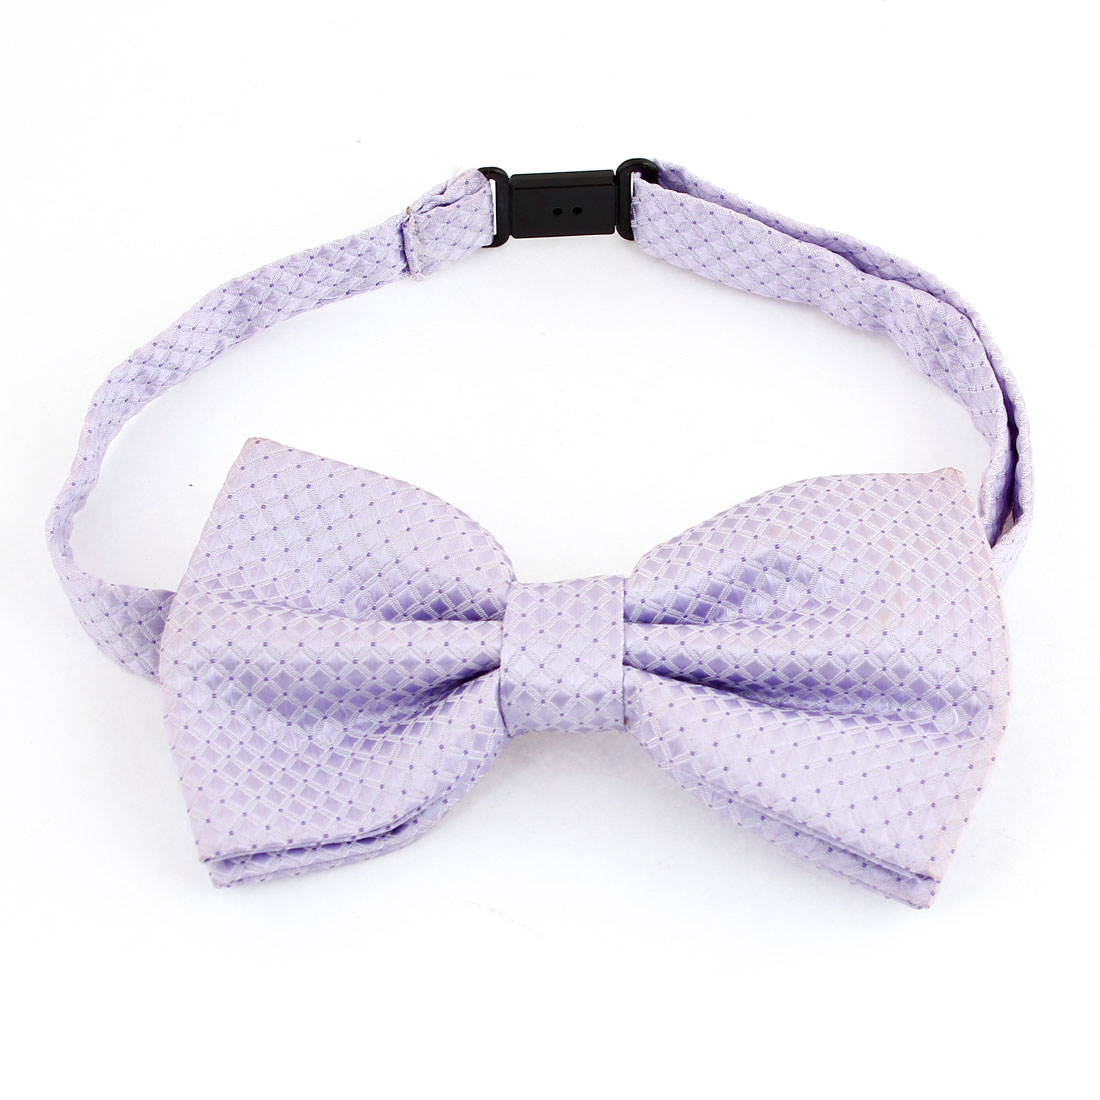 Men Check Printed Pre-tied Design Texture Necktie Bow Tie Light Purple